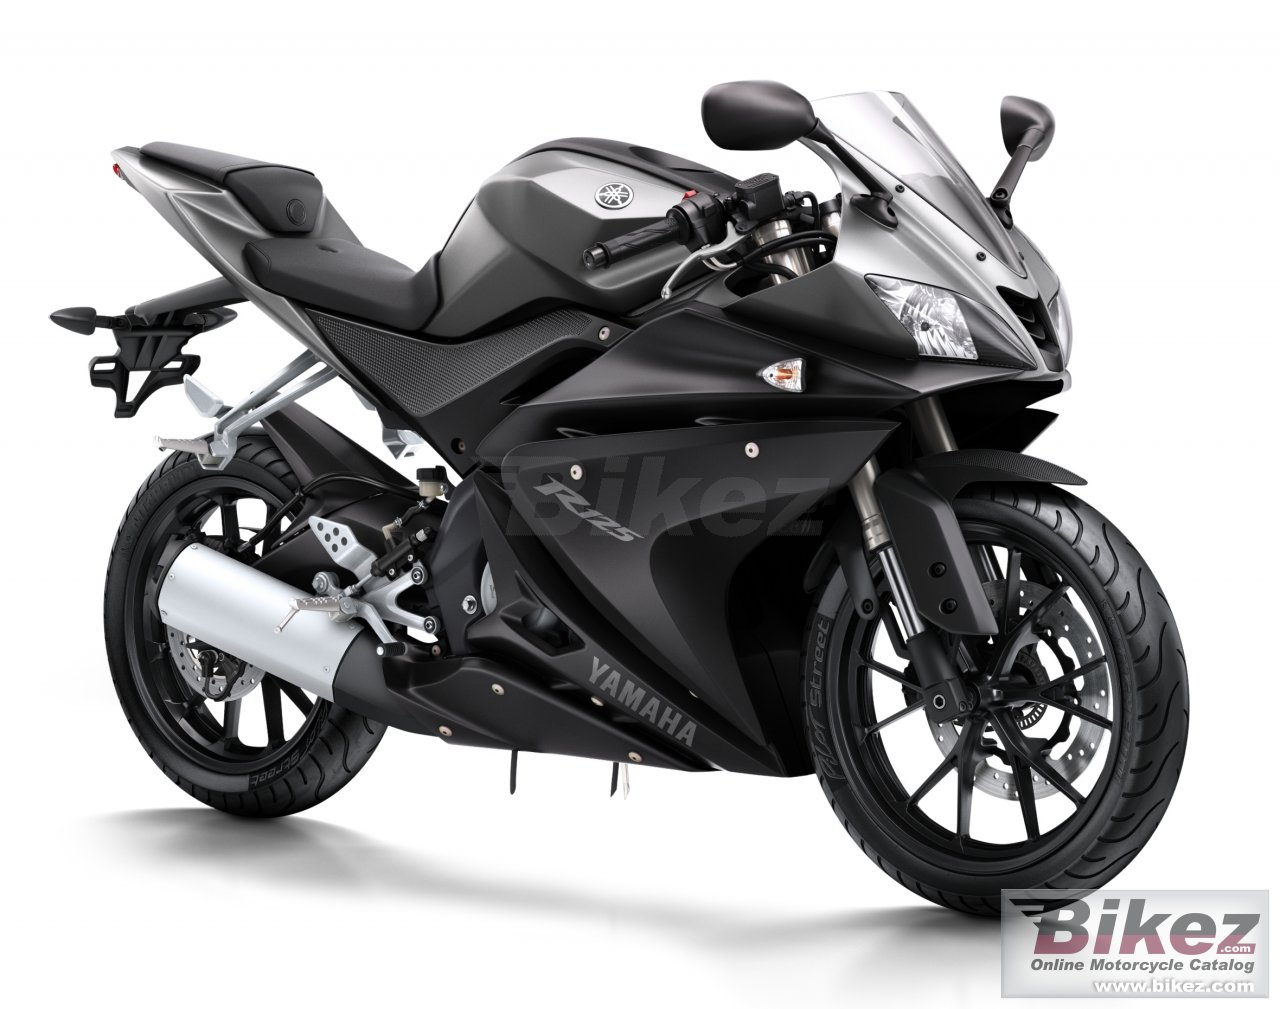 Picture credits yamaha click to submit more pictures - 2015 Yamaha Yzf R125 Abs Picture Credits Yamaha Click To Submit More